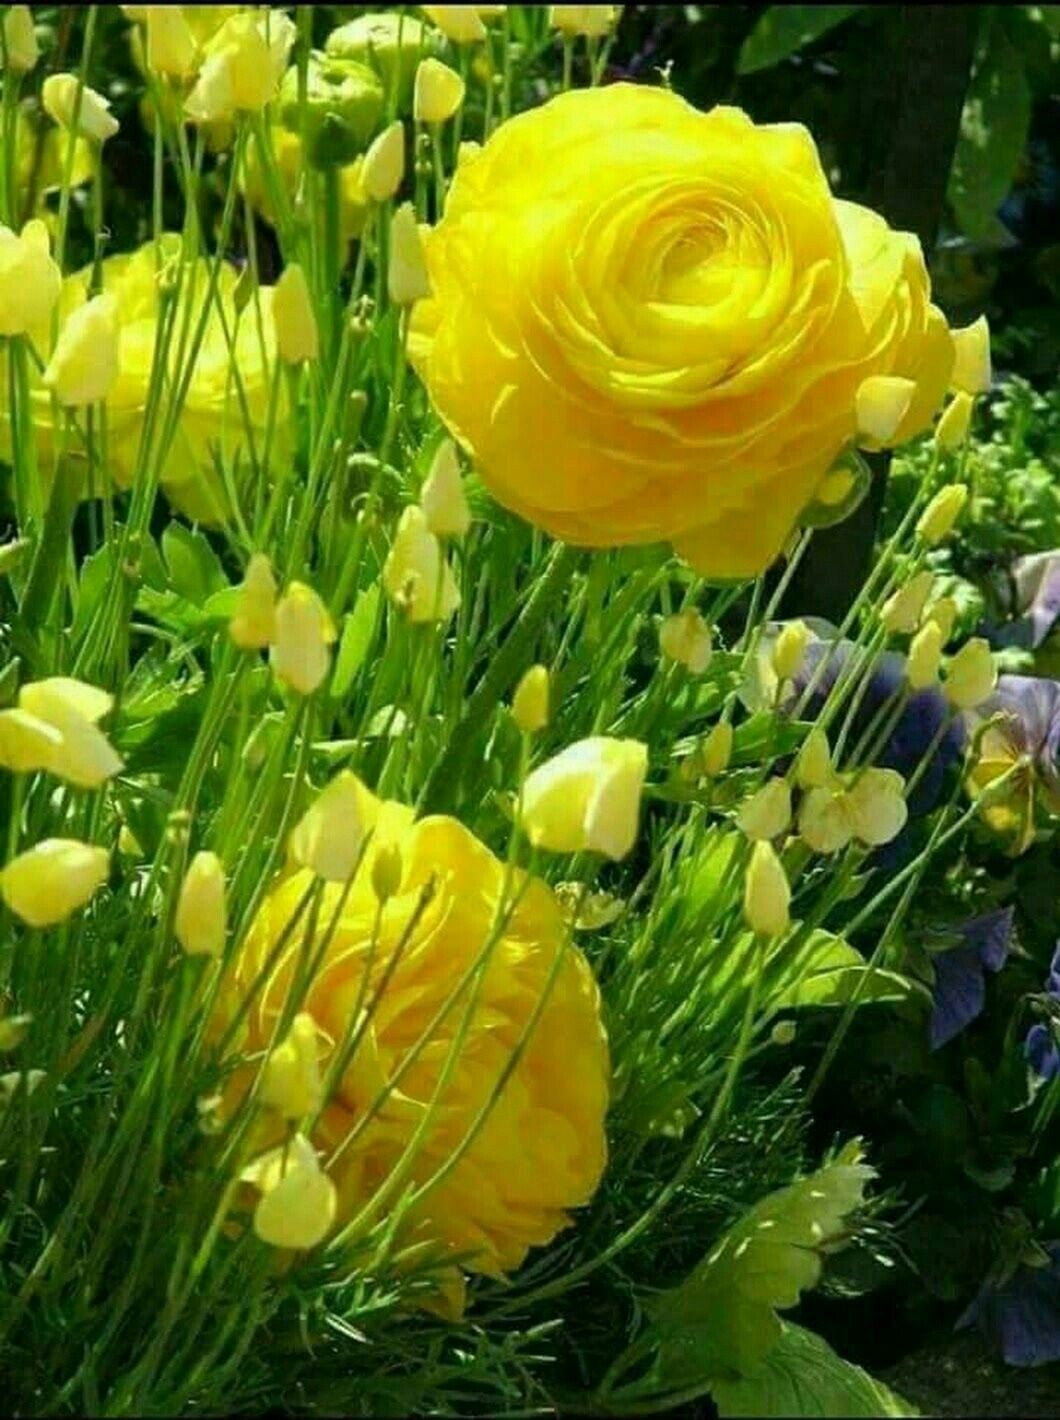 Ranunculus pinterest flowers beautiful flowers and ranunculus flowers nature pretty flowers yellow roses flower pictures orchids types mightylinksfo